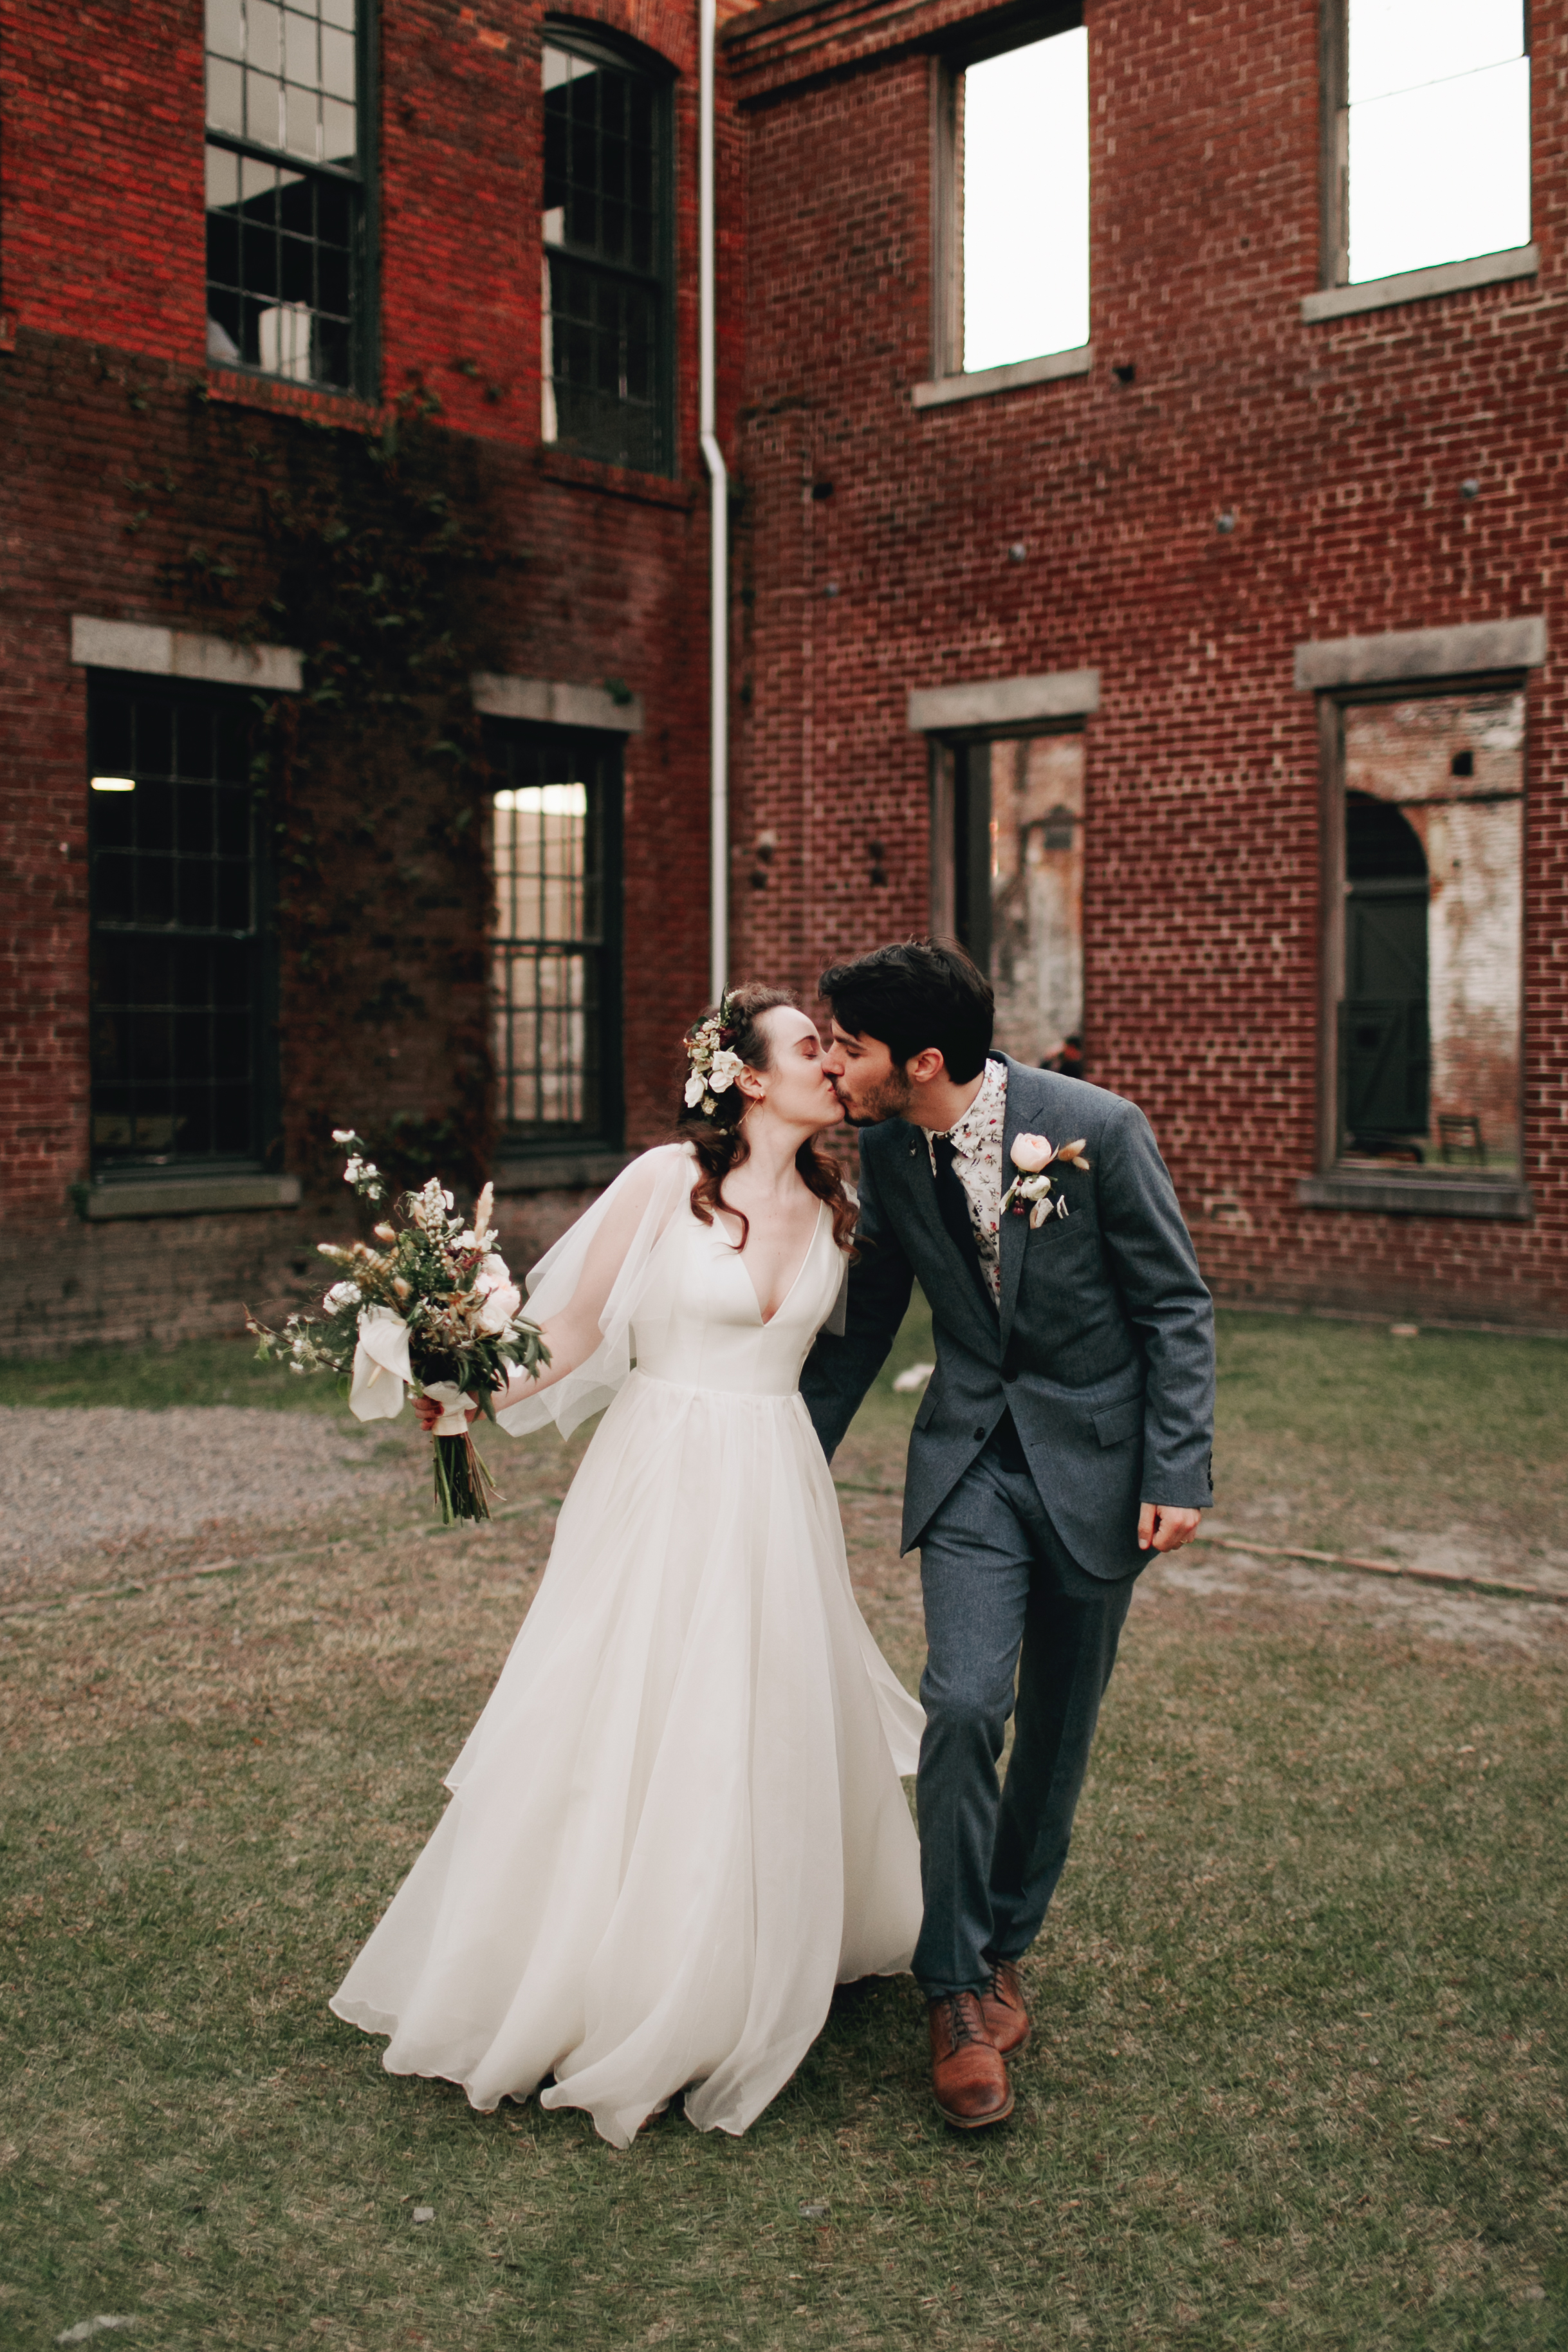 Photography Anthology - Savannah Wedding at Georgia State Railroad Museum (137 of 198).jpg